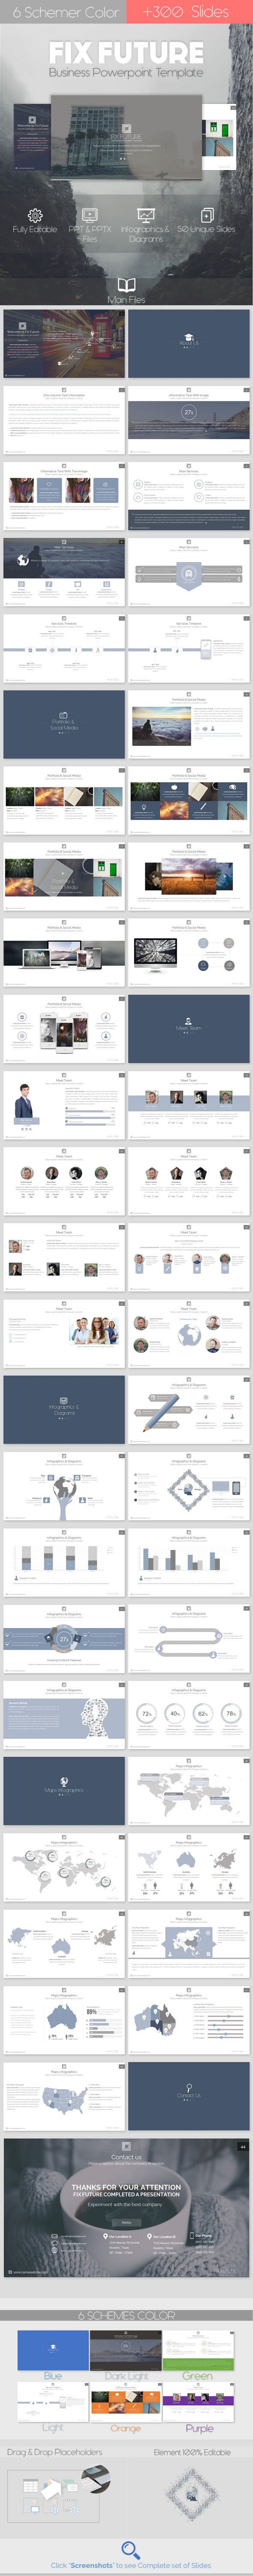 Fix Future - Powerpoint Template #design Download: http://graphicriver.net/item/fix-future-powerpoint-template/11808001?ref=ksioks